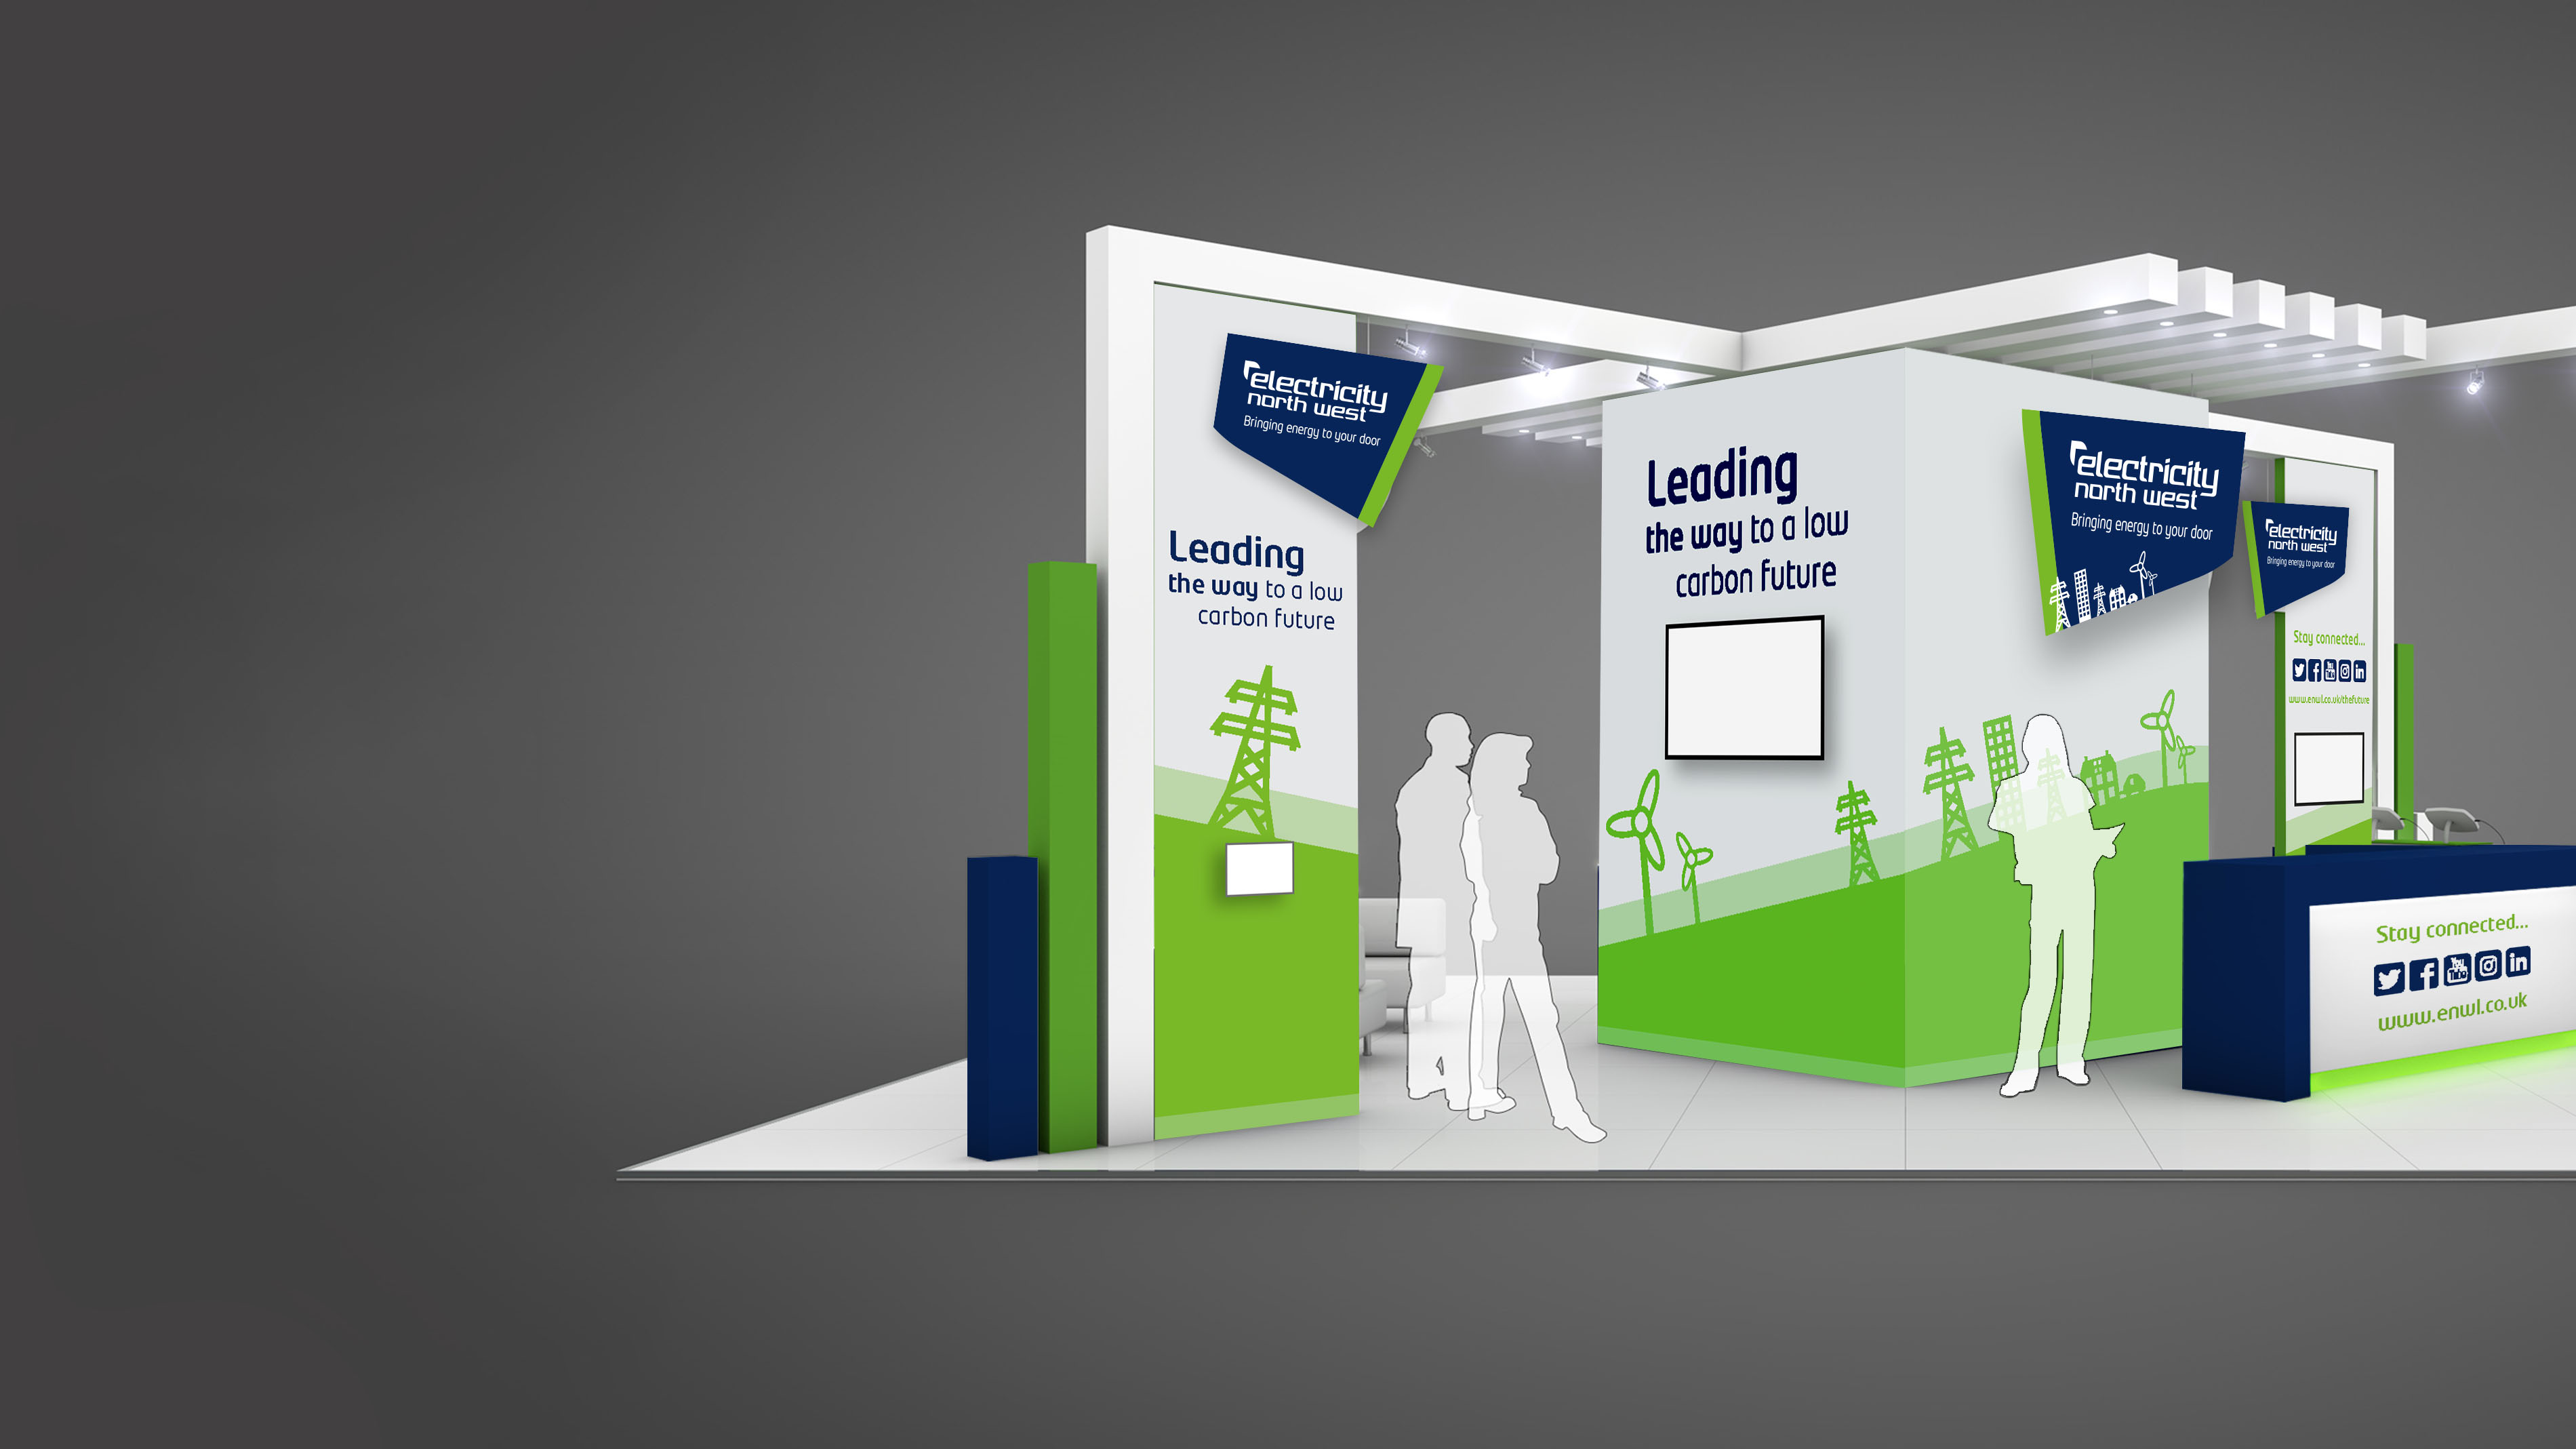 Exhibition Stand Design Drawings : Exhibition stand build u parker u london cheshire cambridge